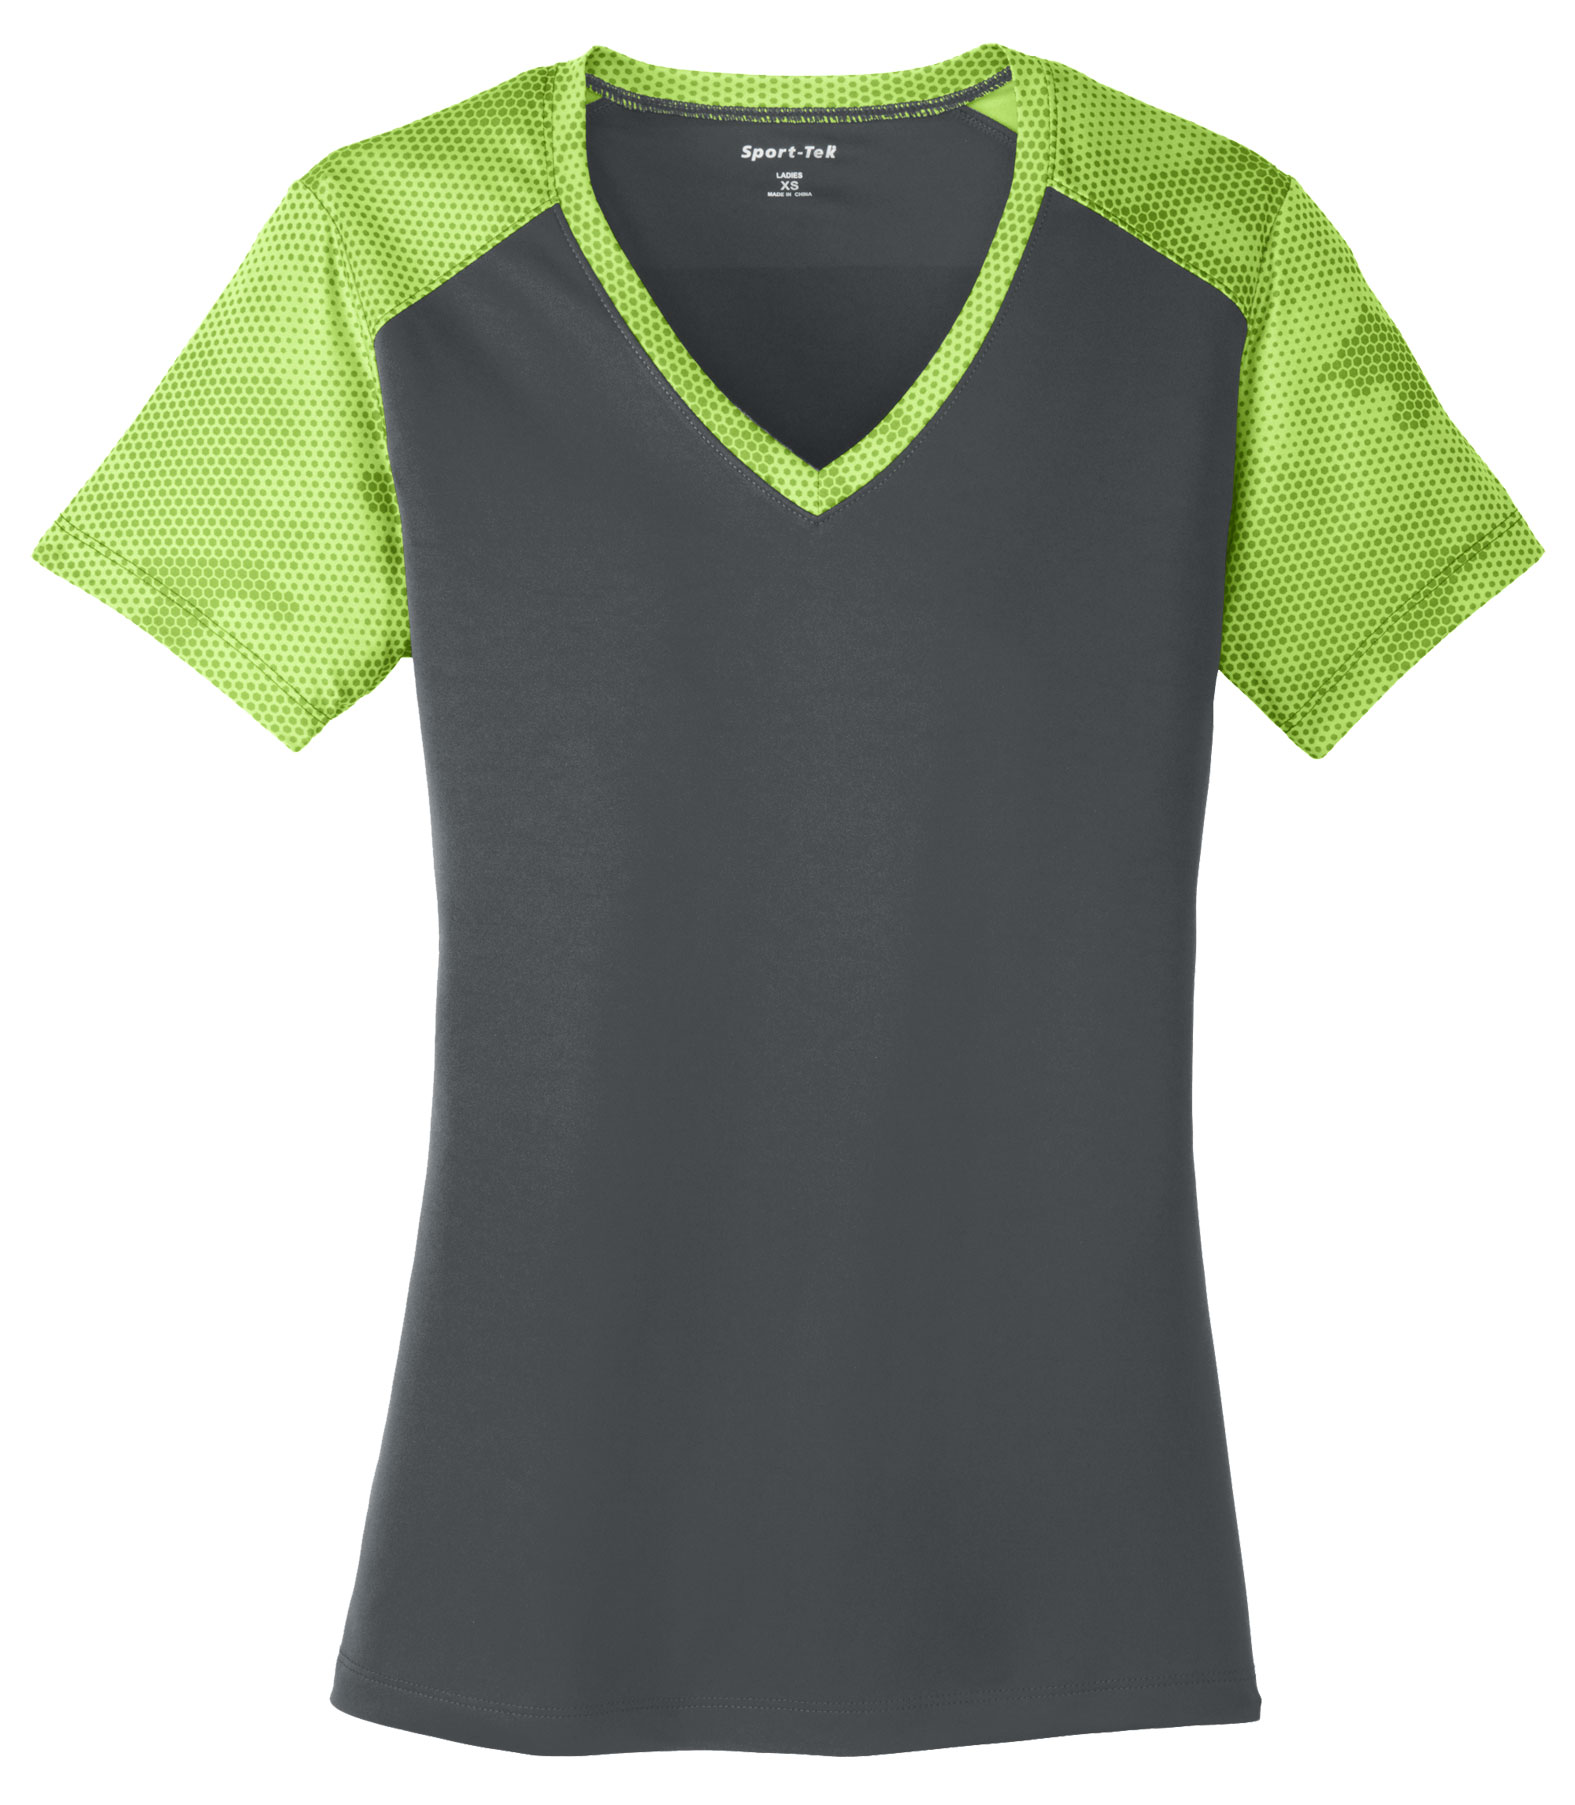 Ladies CamoHex Colorblock V-Neck Tee